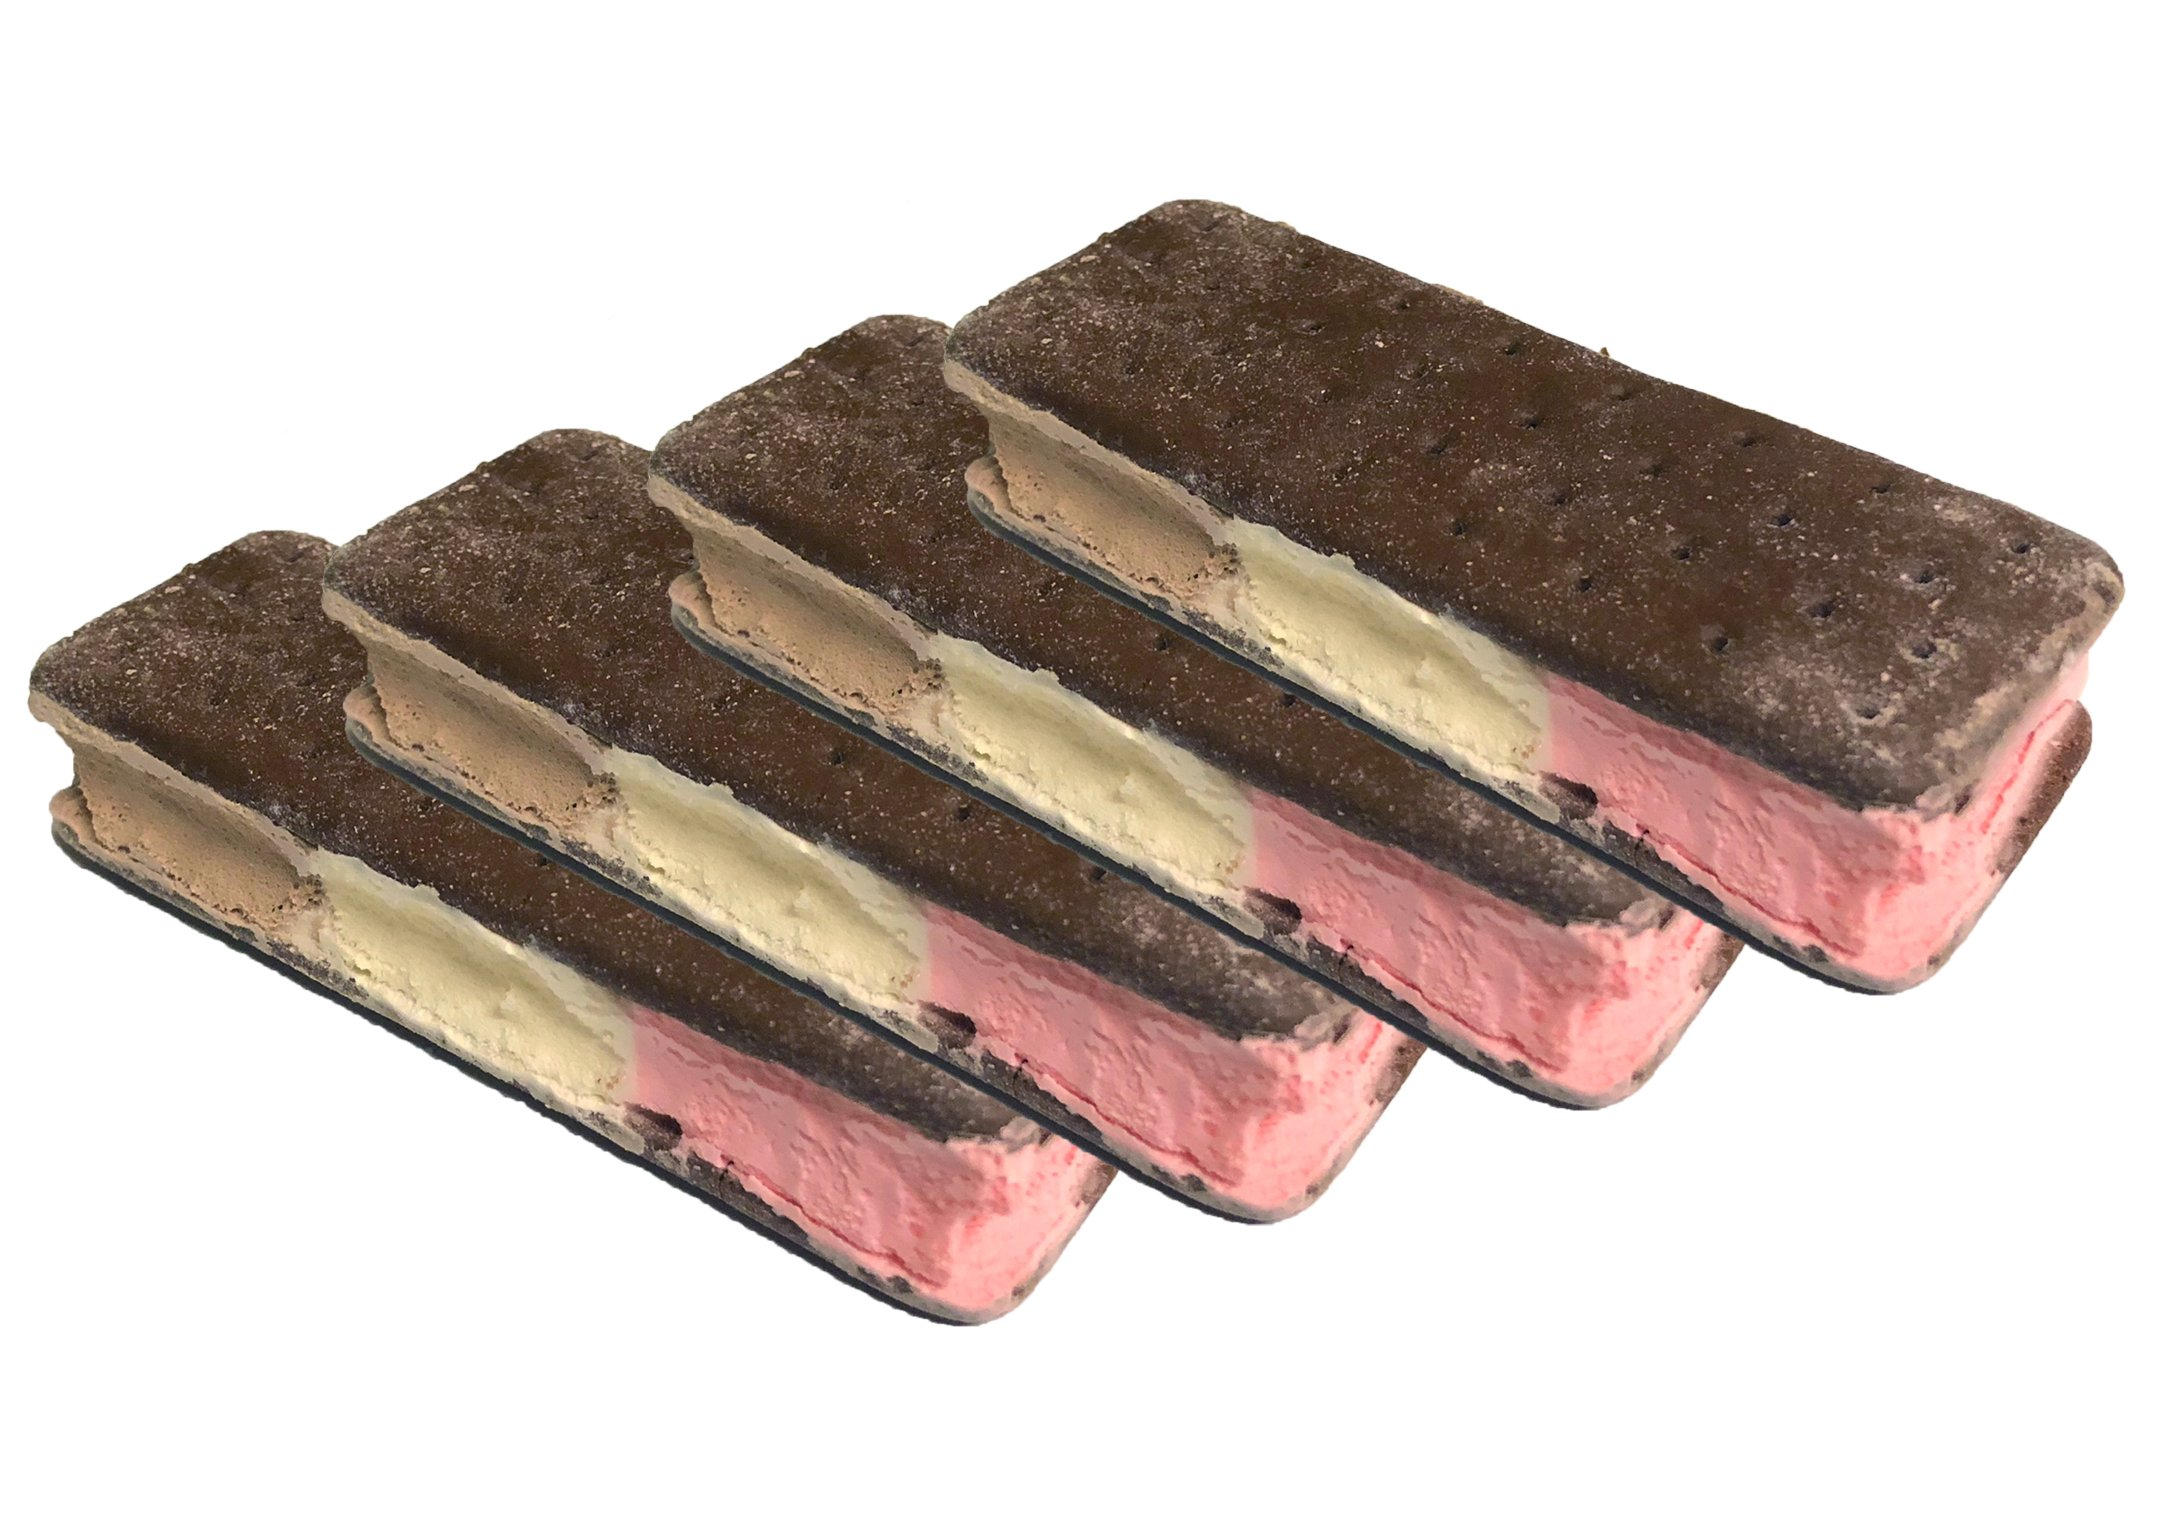 Freeze Dried Ice Cream Food - Neapolitan 4 pack - Classic Vanilla, Chocolate and Strawberry Ice Cream